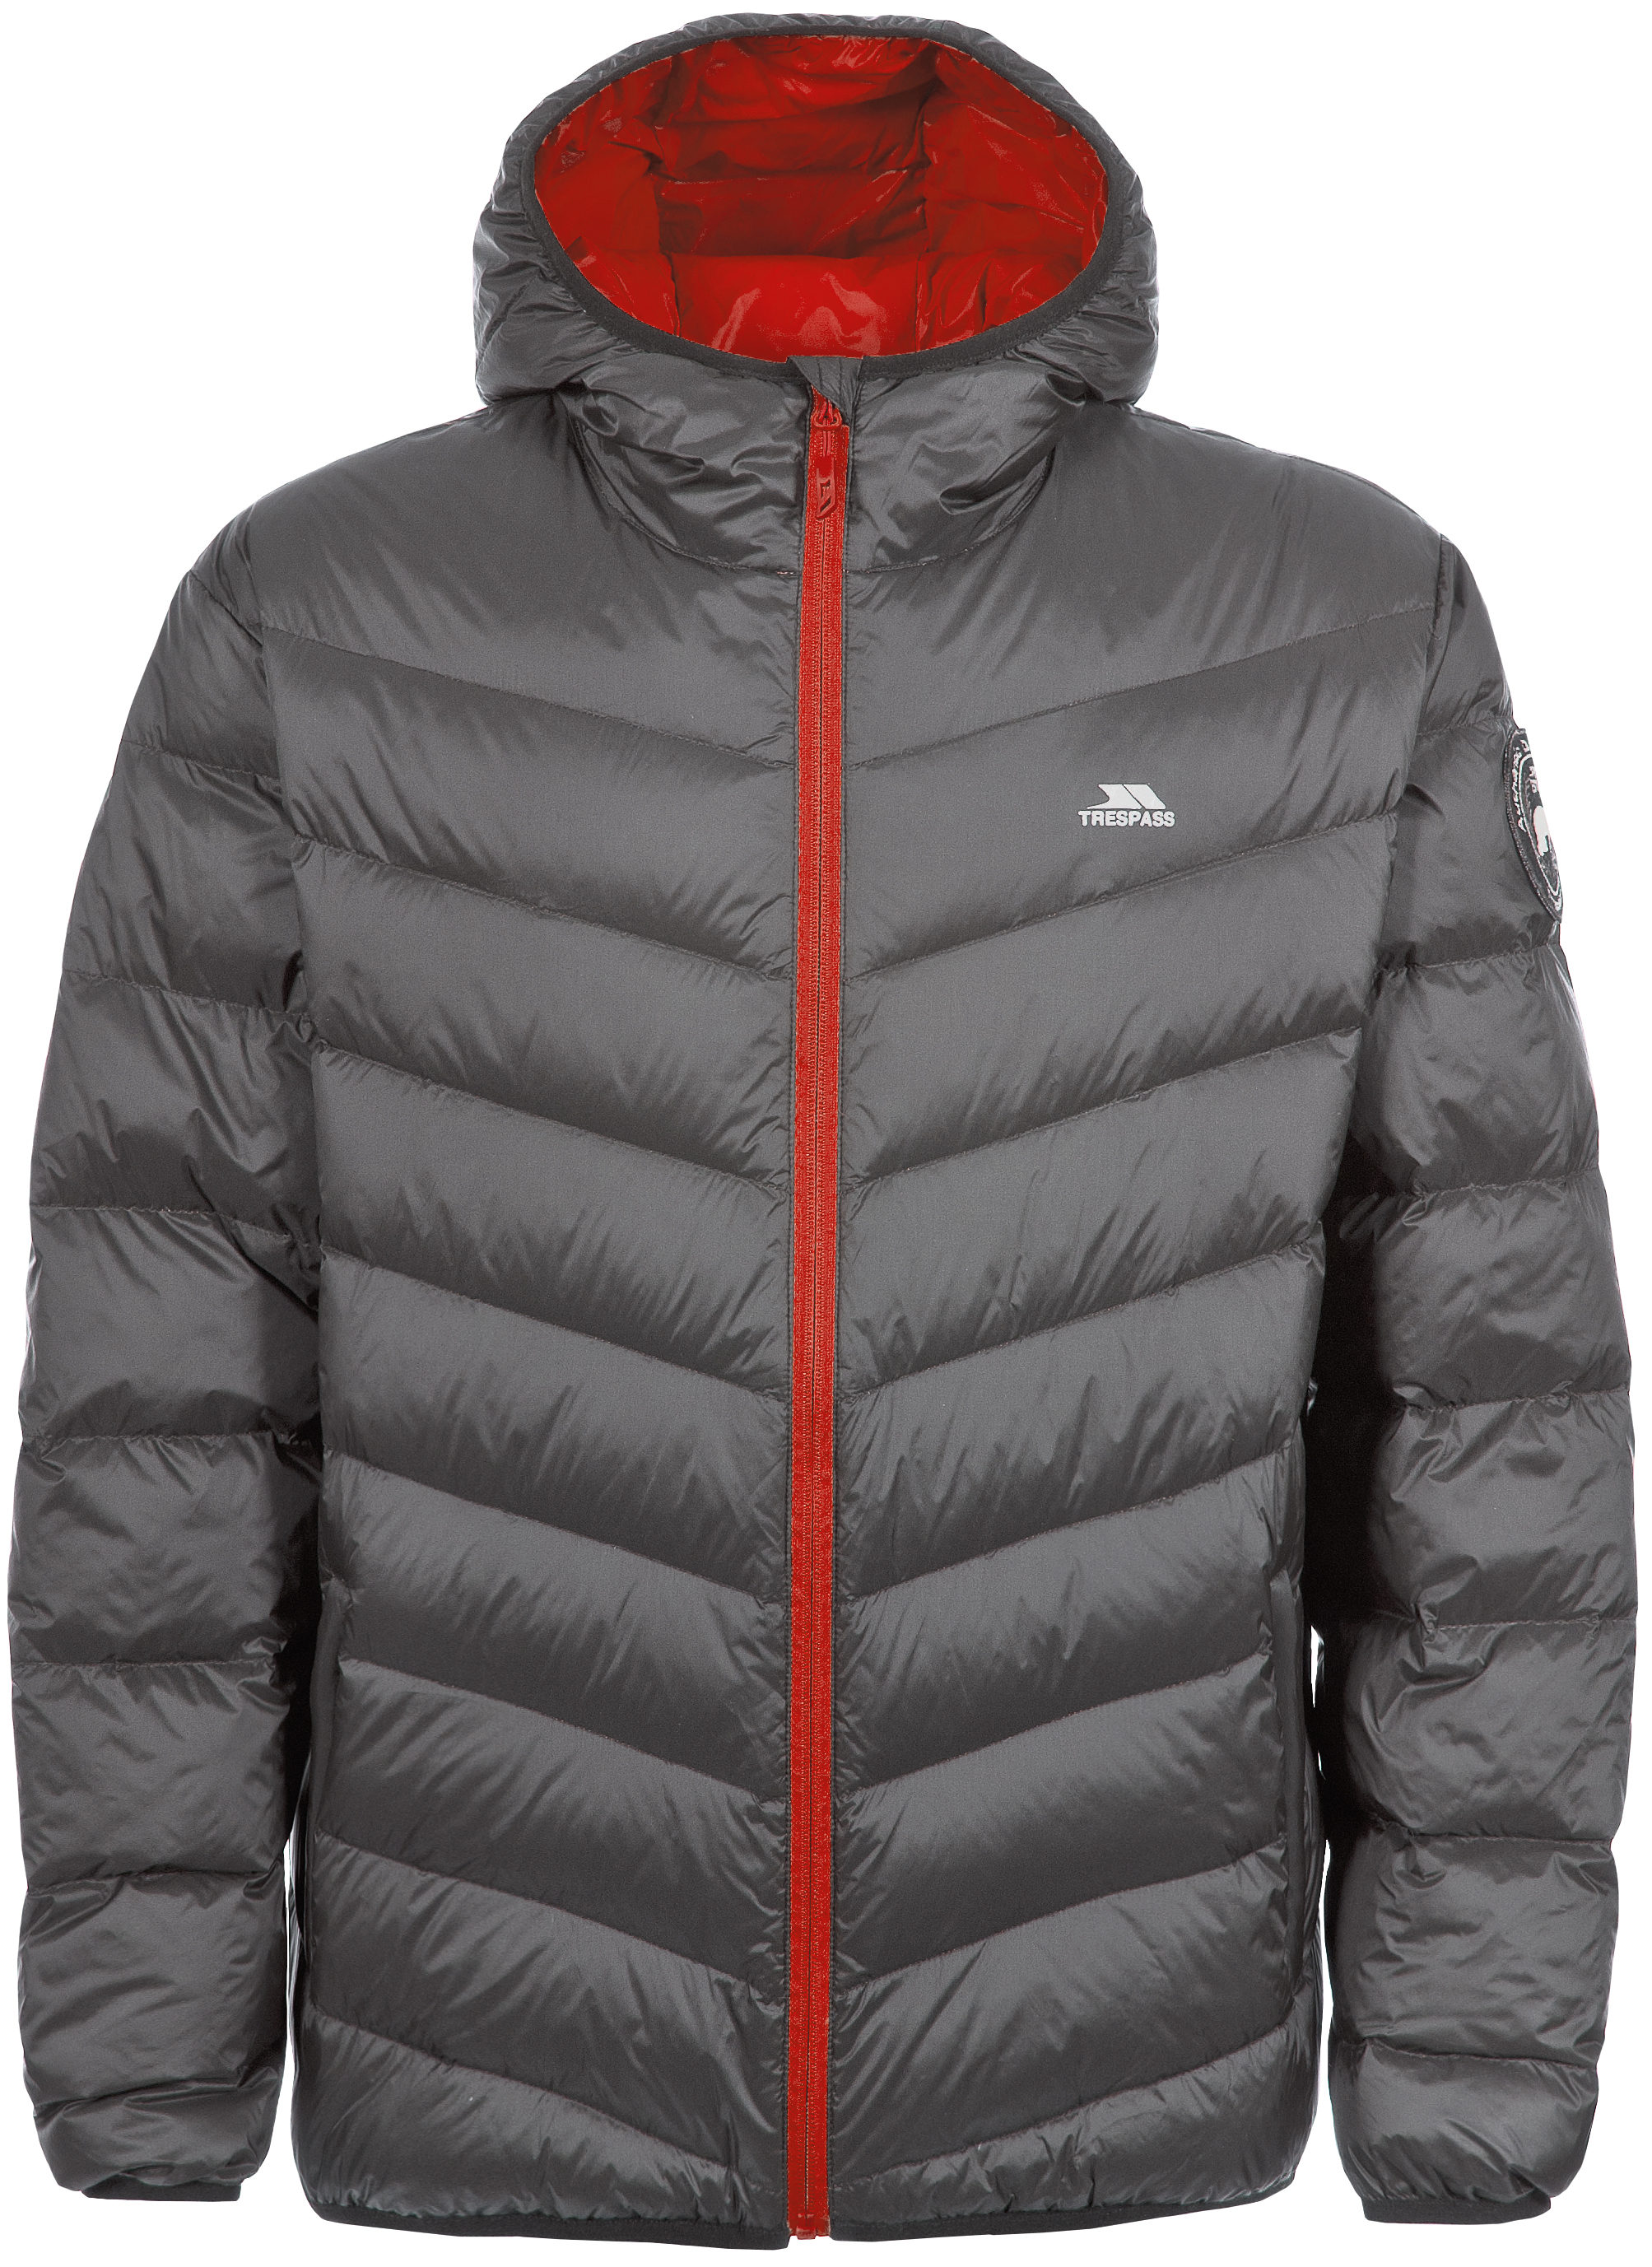 Trespass Stormer Men's Winter Coat With Hood Warm Padded Down ...